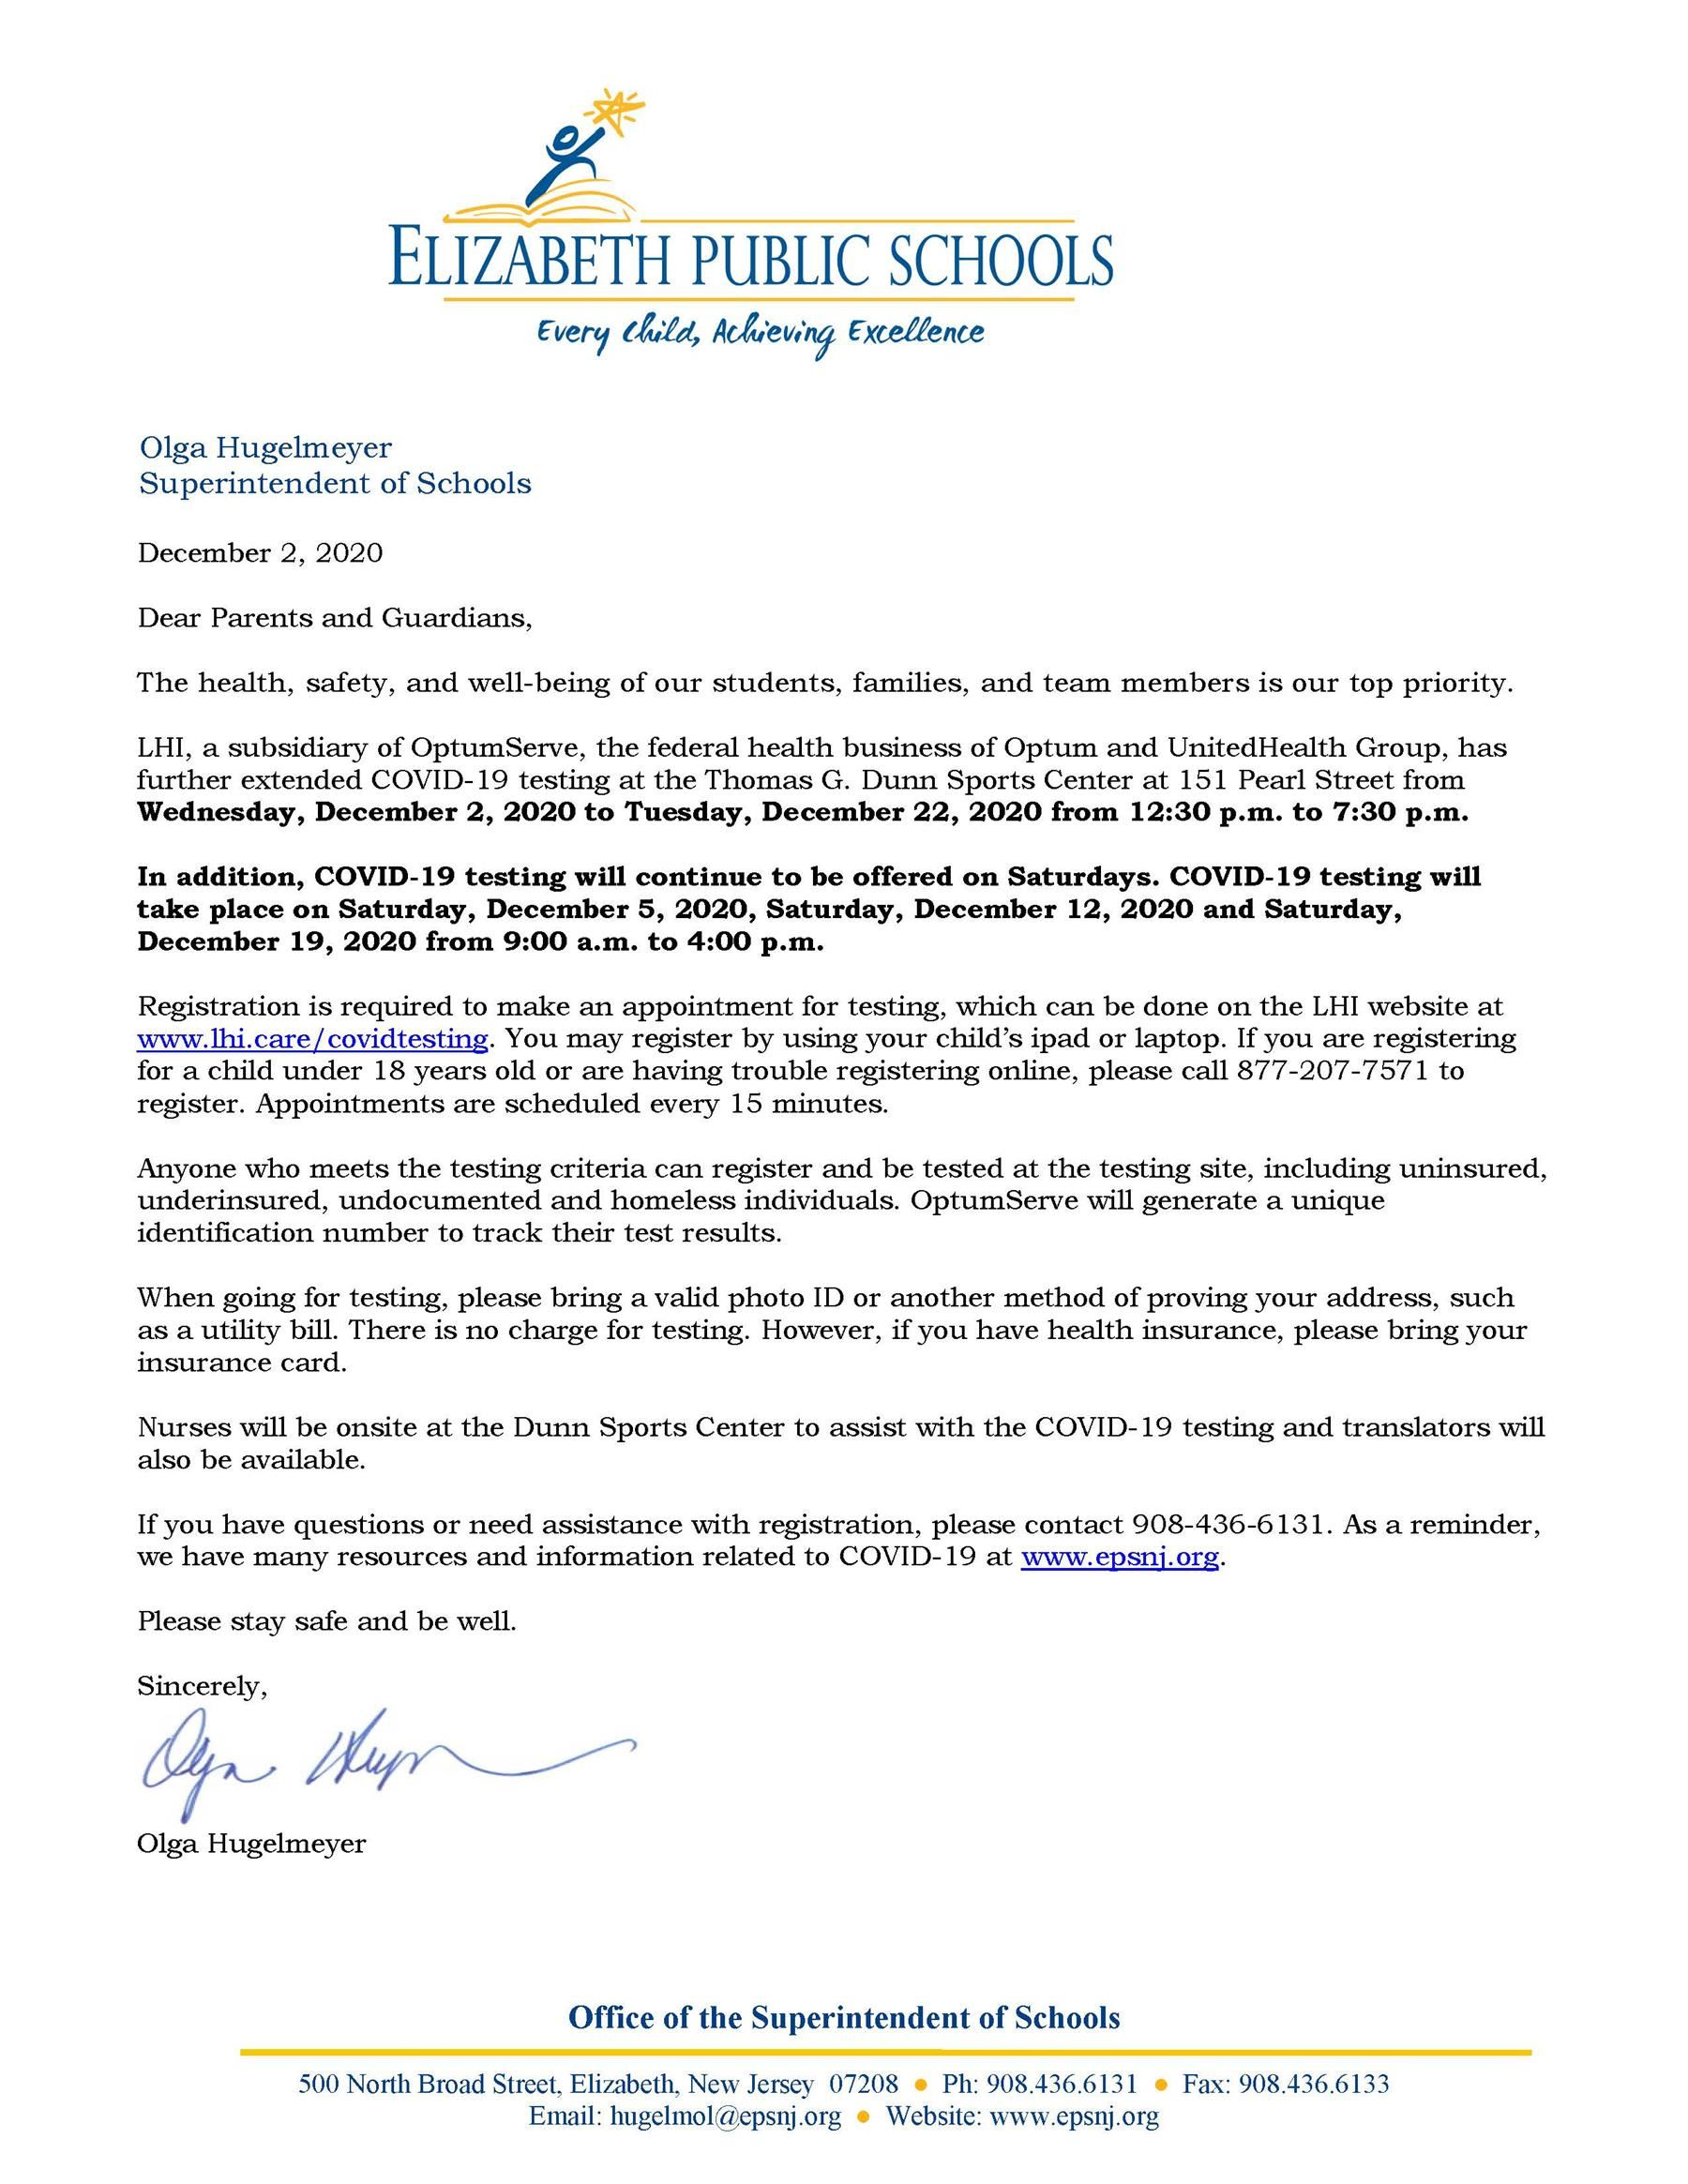 Letter to Parents-Guardians- COVID Testing at Dunn Sports Center Extended